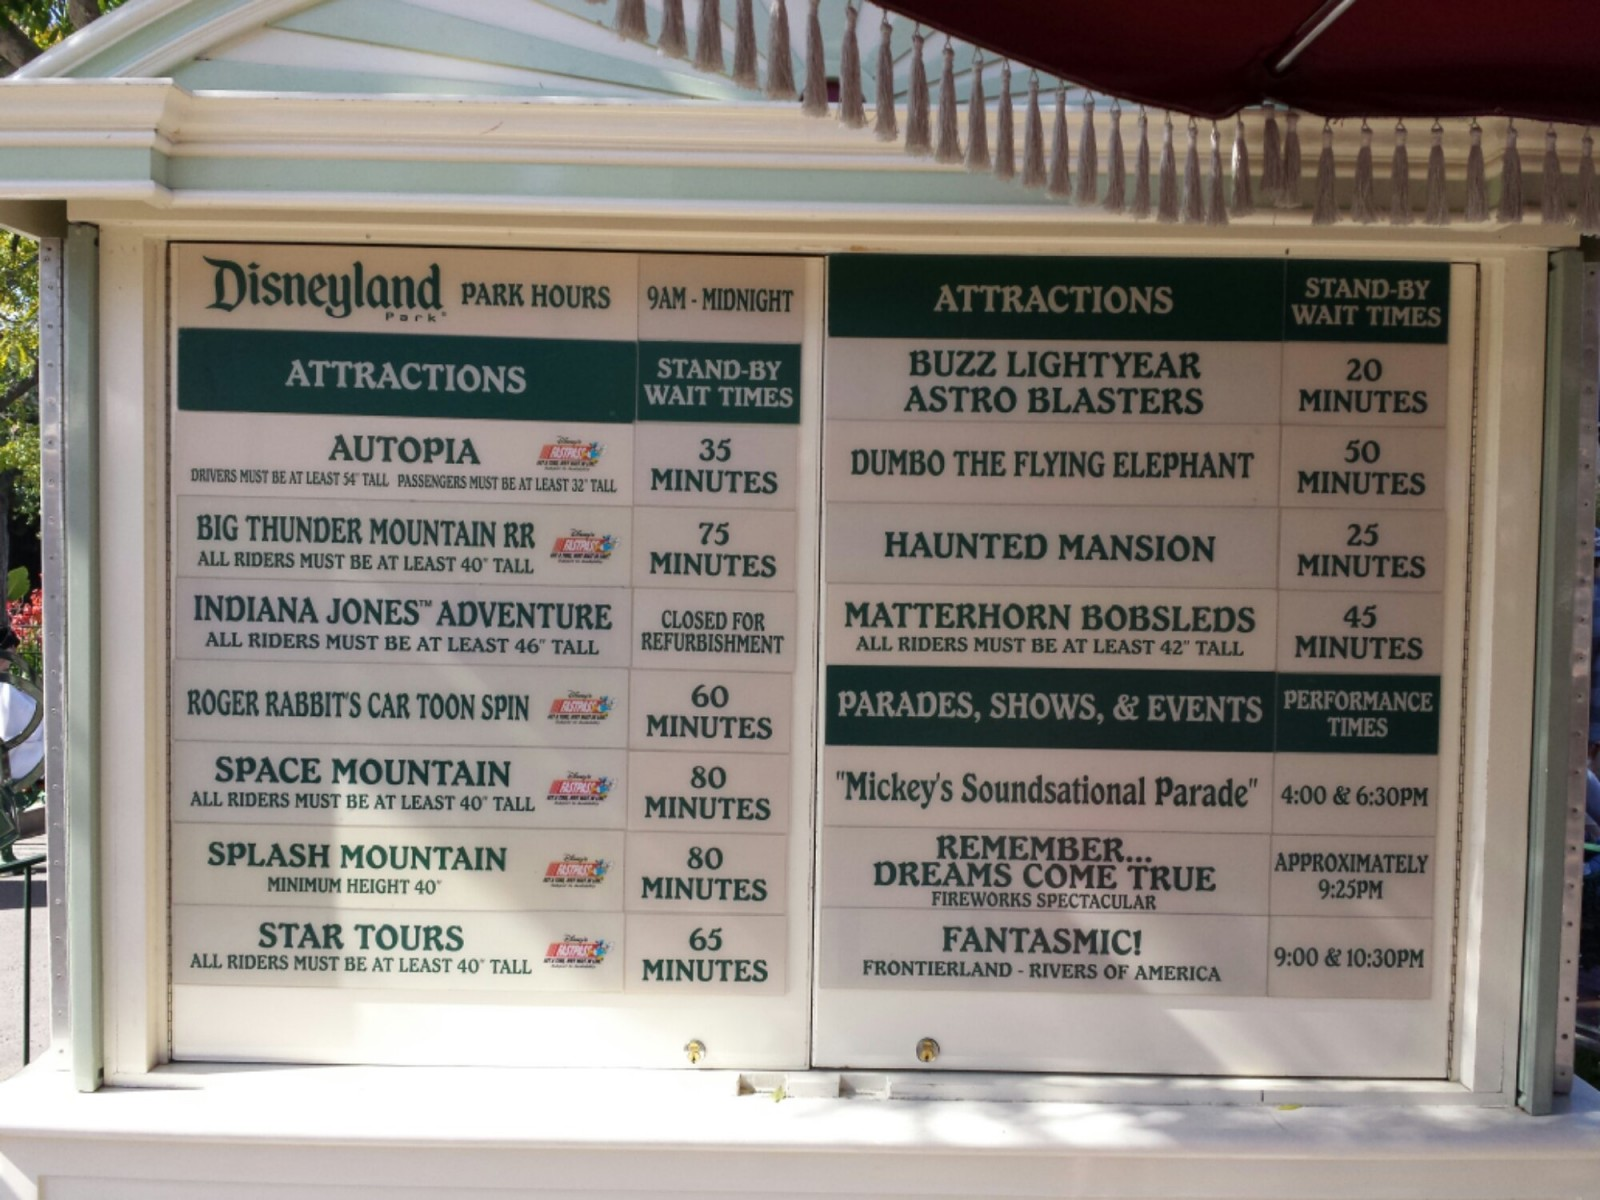 #Disneyland wait times at 3:20pm